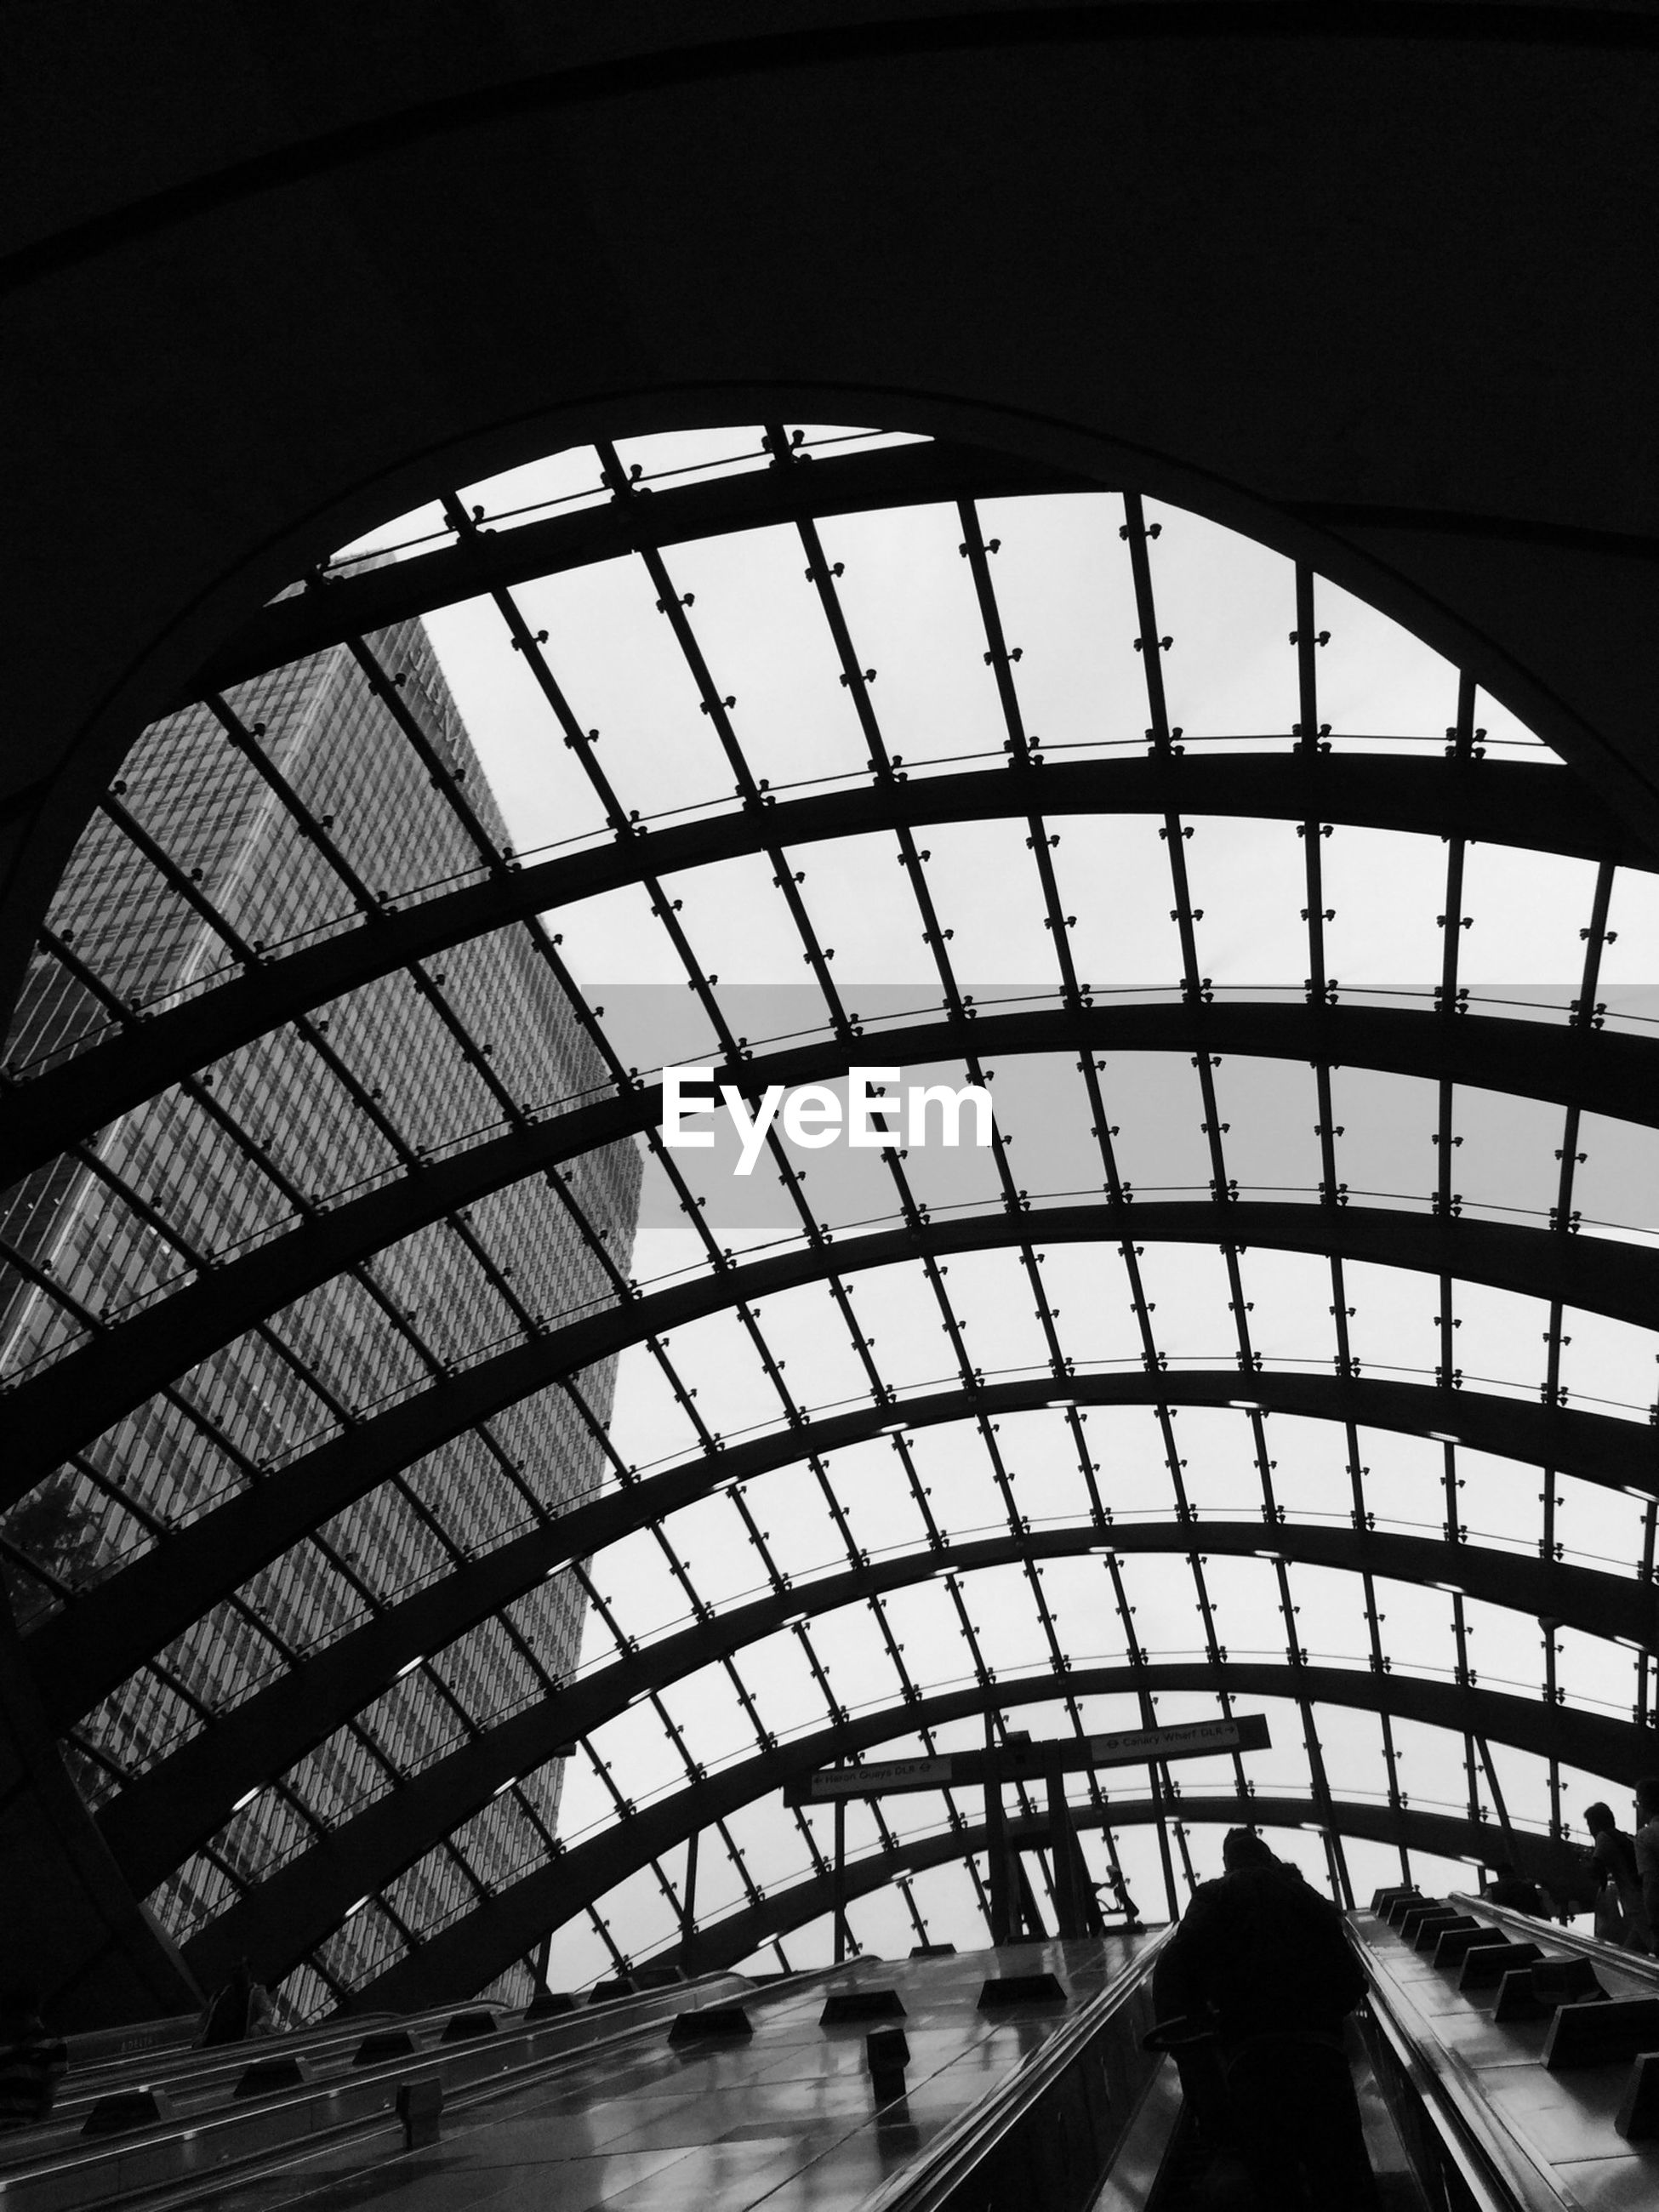 Low angle view of escalator below glass roof